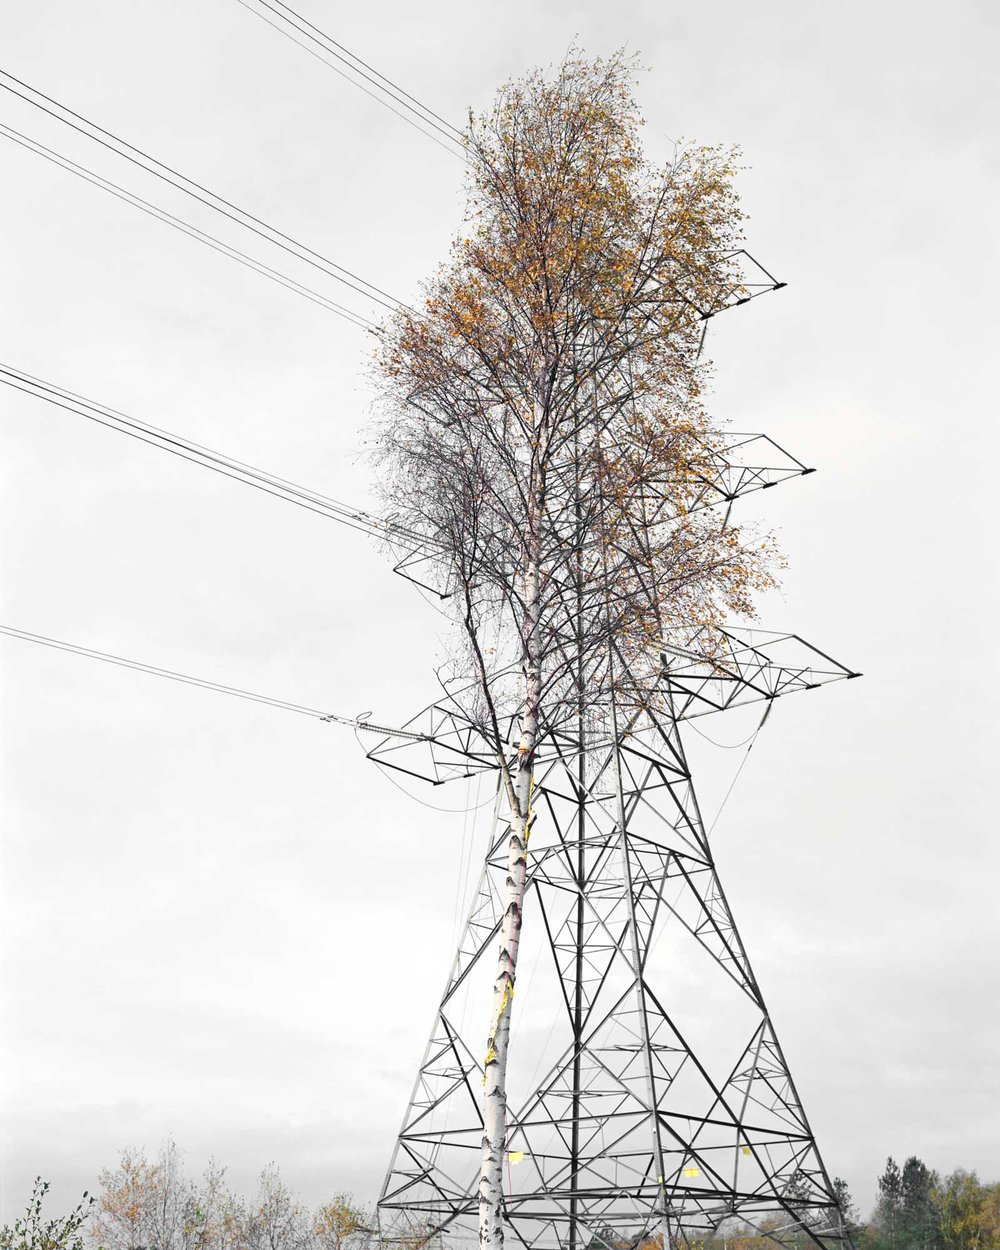 Birch & Steel, Pigment Print, 152 x 122 cm, 2008, Edition of 7